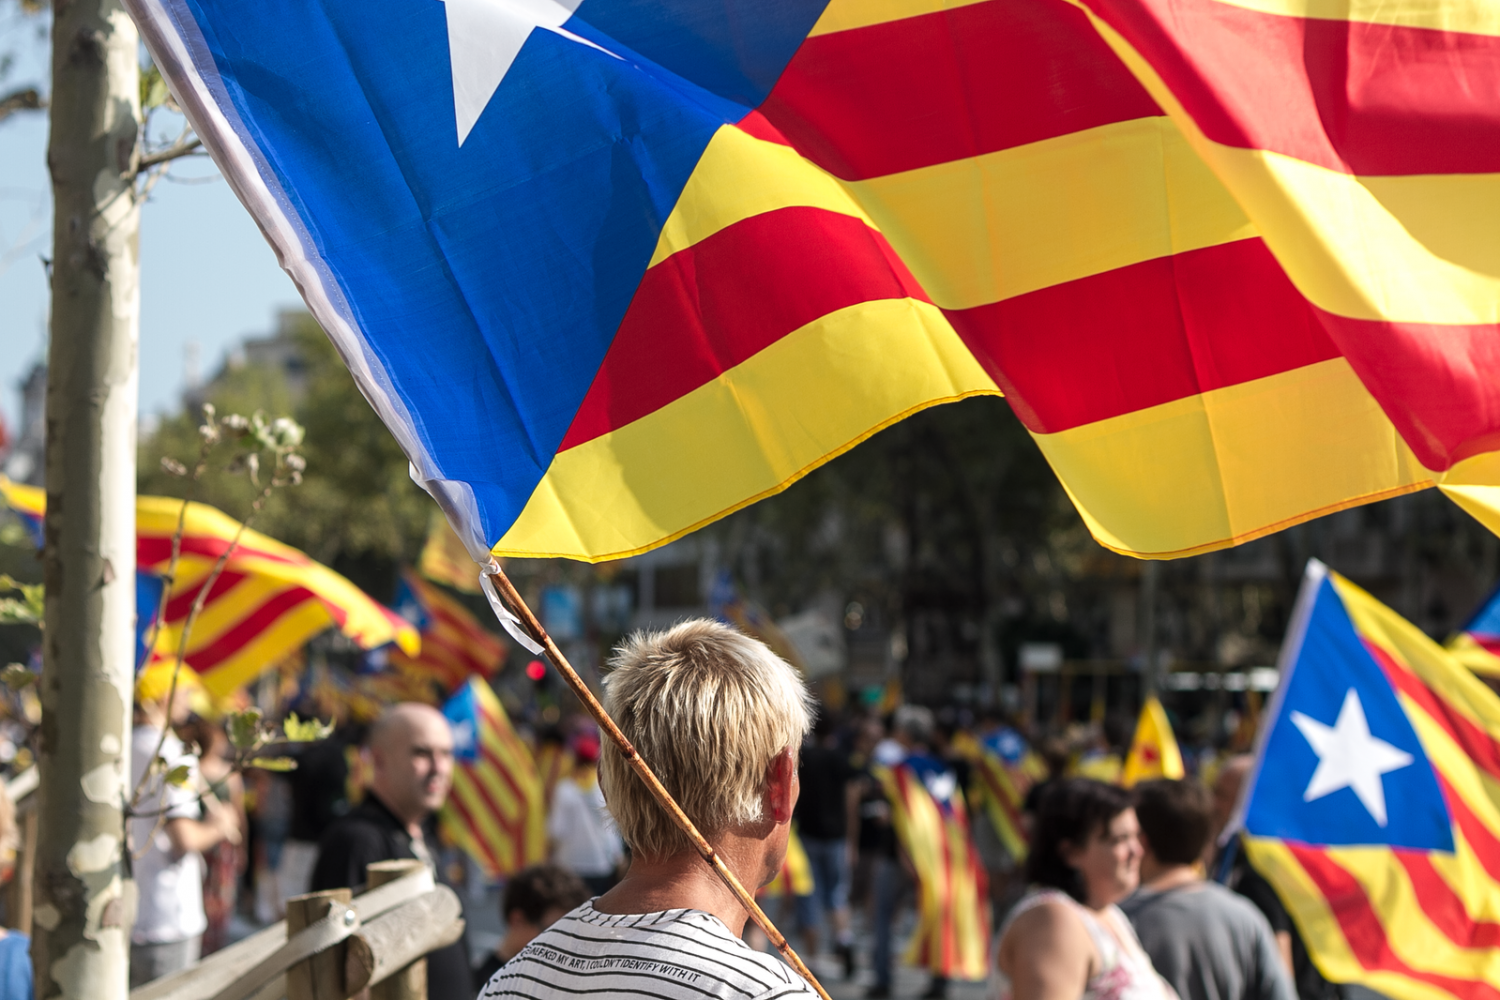 Catalans of all ages march through streets of Catalonia, showing the widespread support for the referendum on independence.